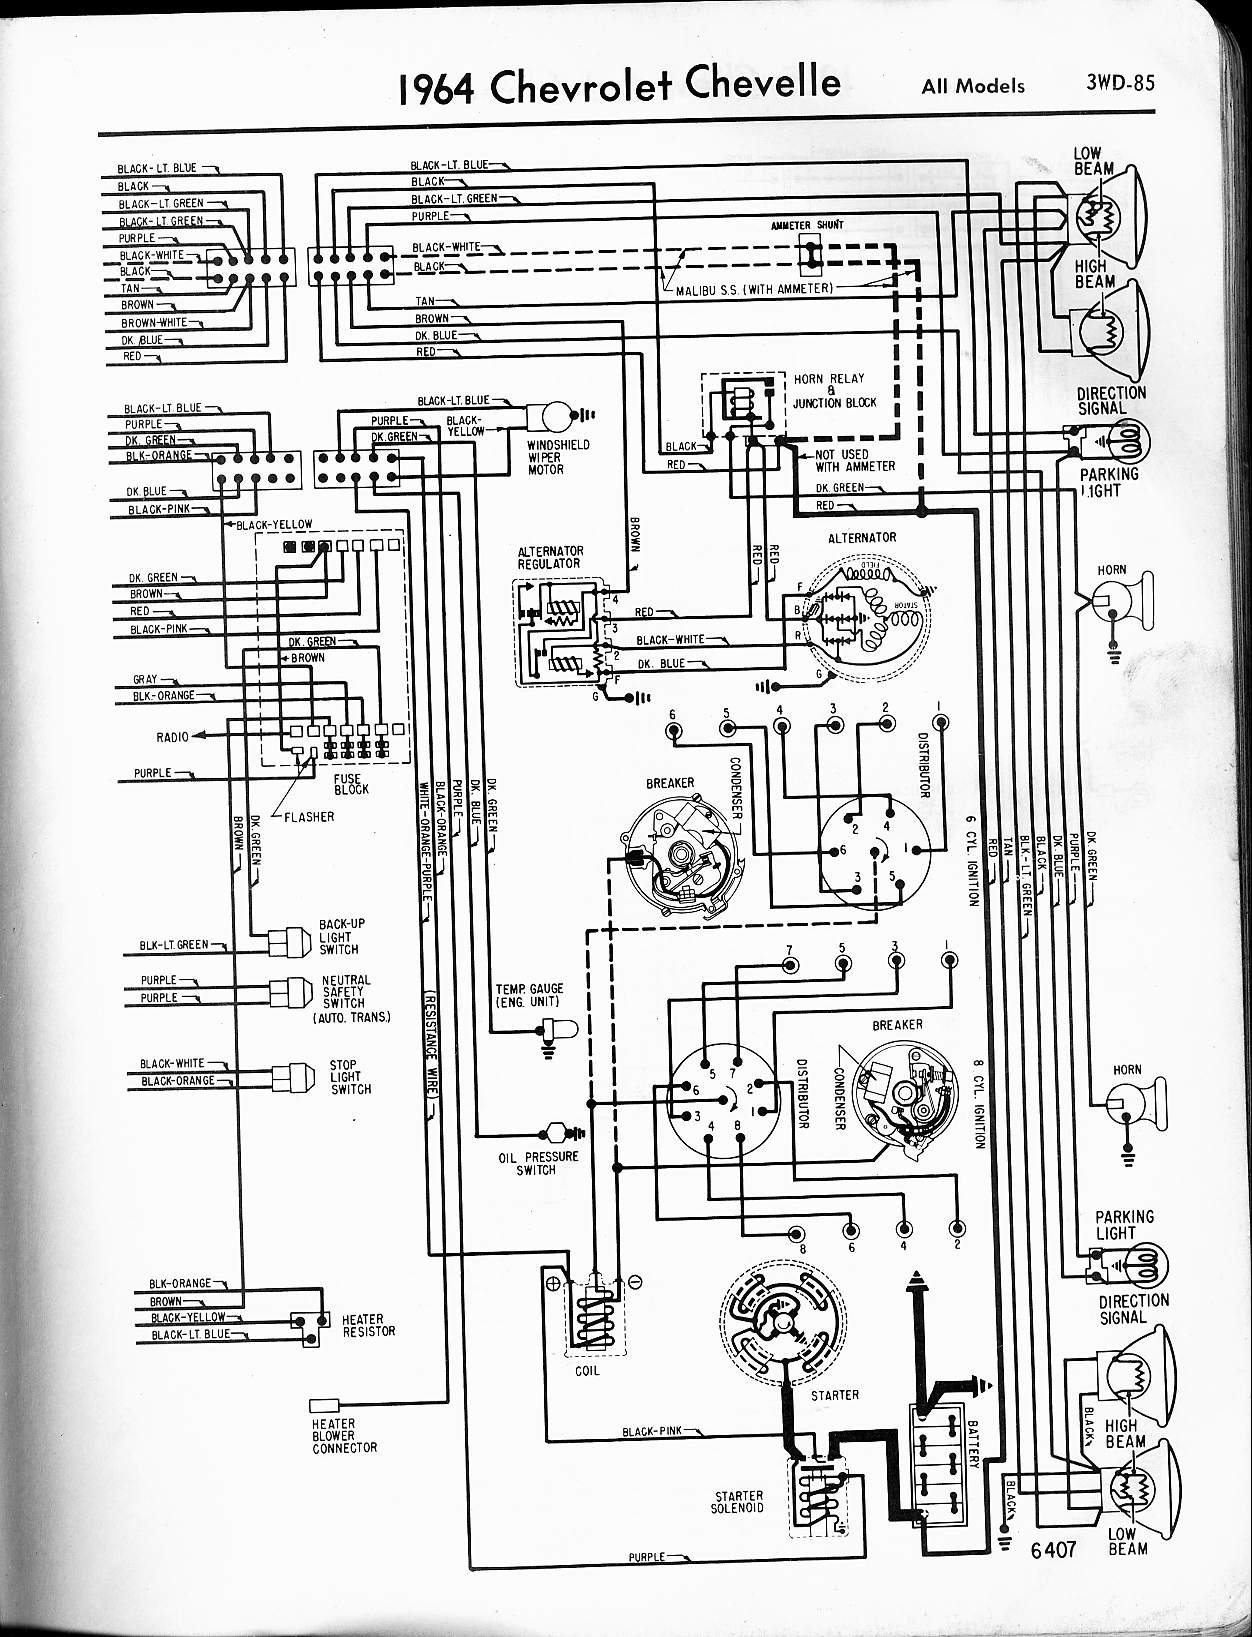 1967 Chevy Wiring Diagram | Wiring Liry